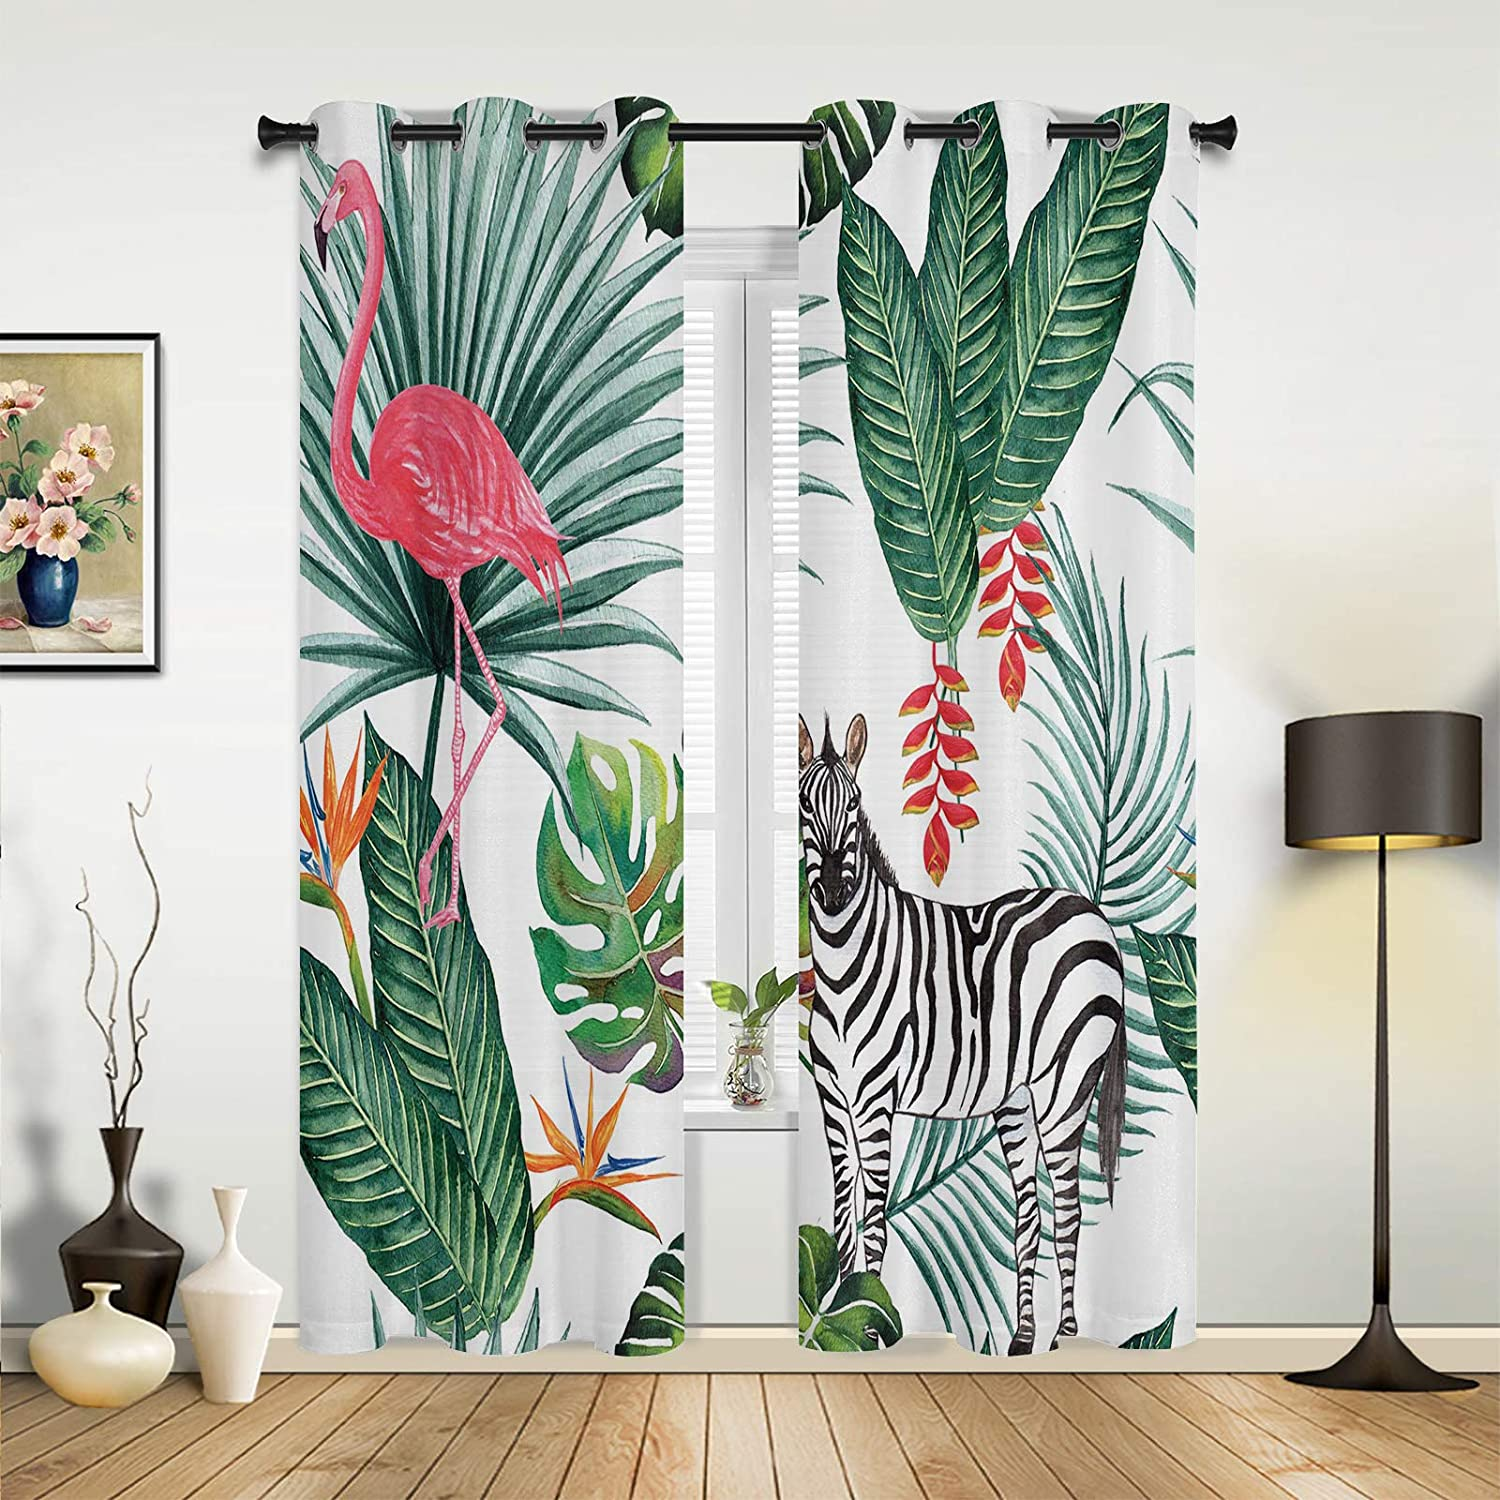 Window Sheer Curtains 100% quality warranty It is very popular for Bedroom Room Living Fu Tropical Jungle